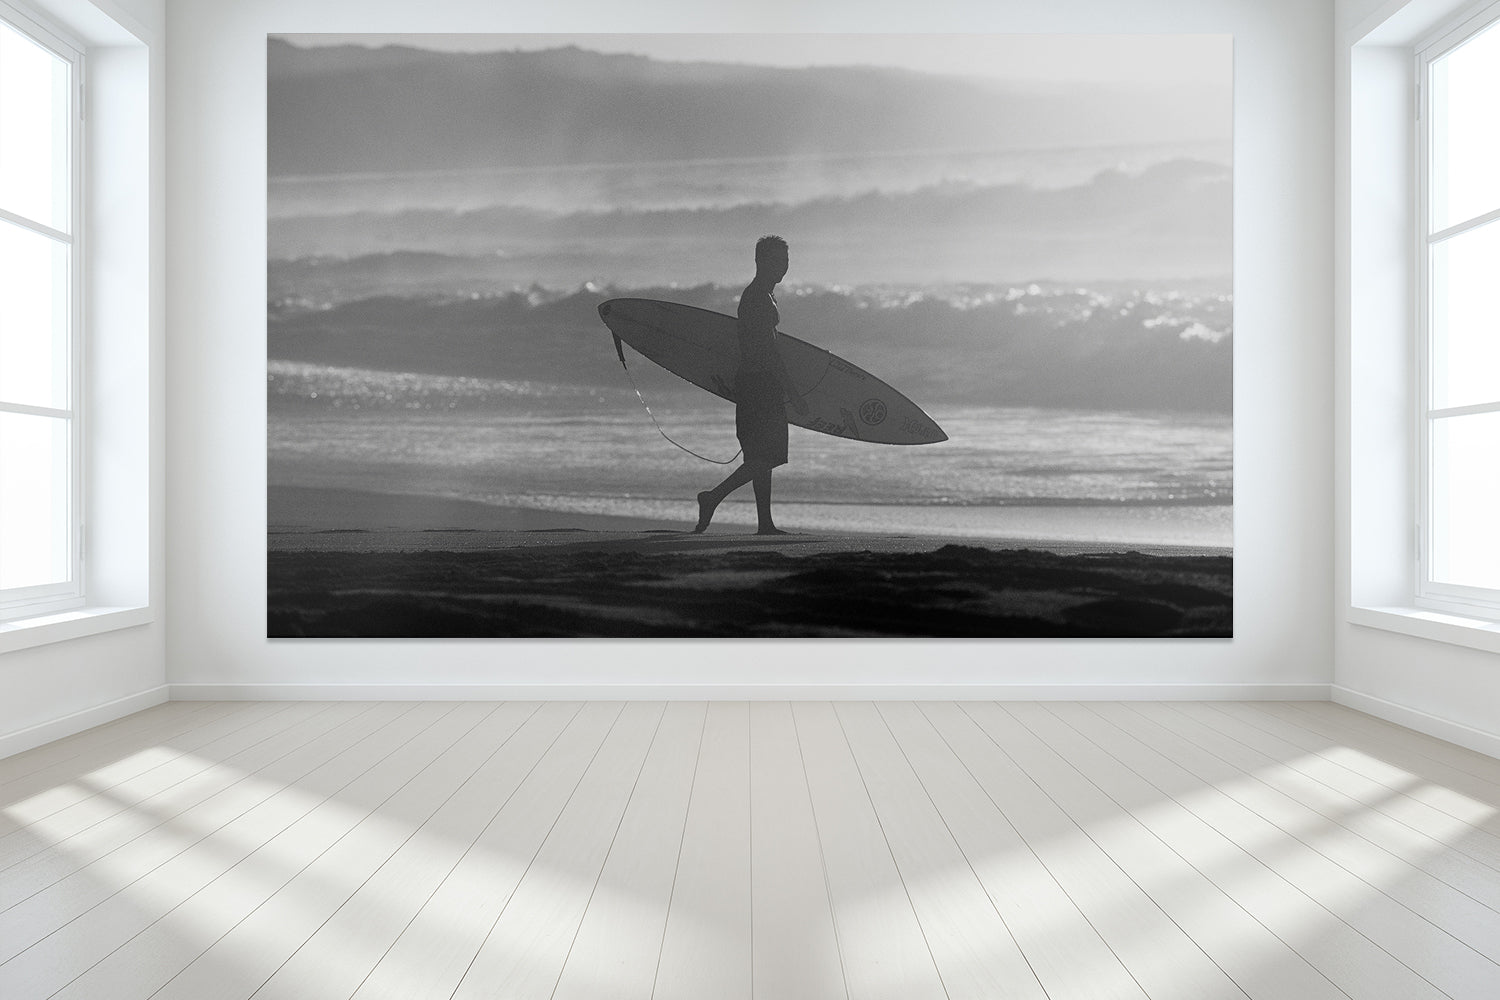 Surfing wall murals from Hawaii of a surfer walking on the beach on the North Shore of Oahu.